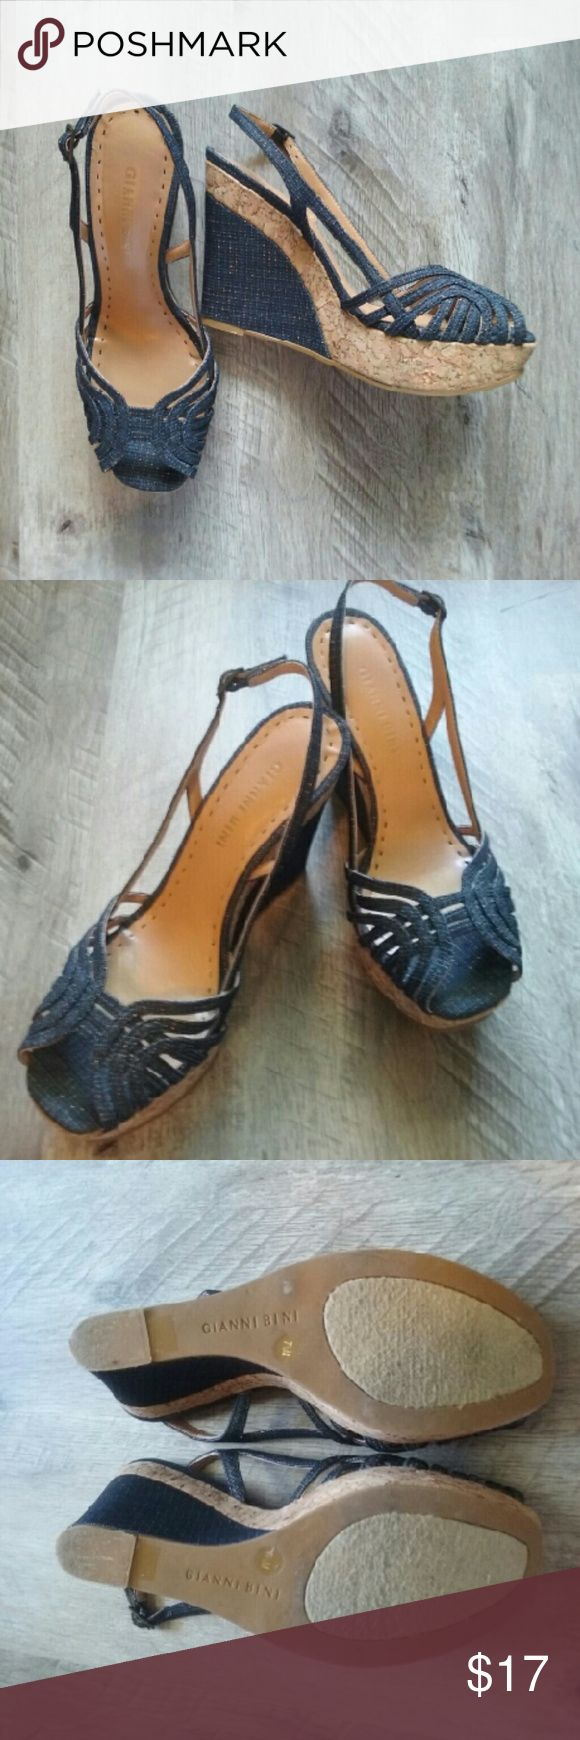 "Gianni Bini denim and gold wedge shoes Strappy wedges in a denim & gold fabric. No signs of wear on uppers; look new! Heel height is 4.5."" Gianni Bini Shoes Wedges"